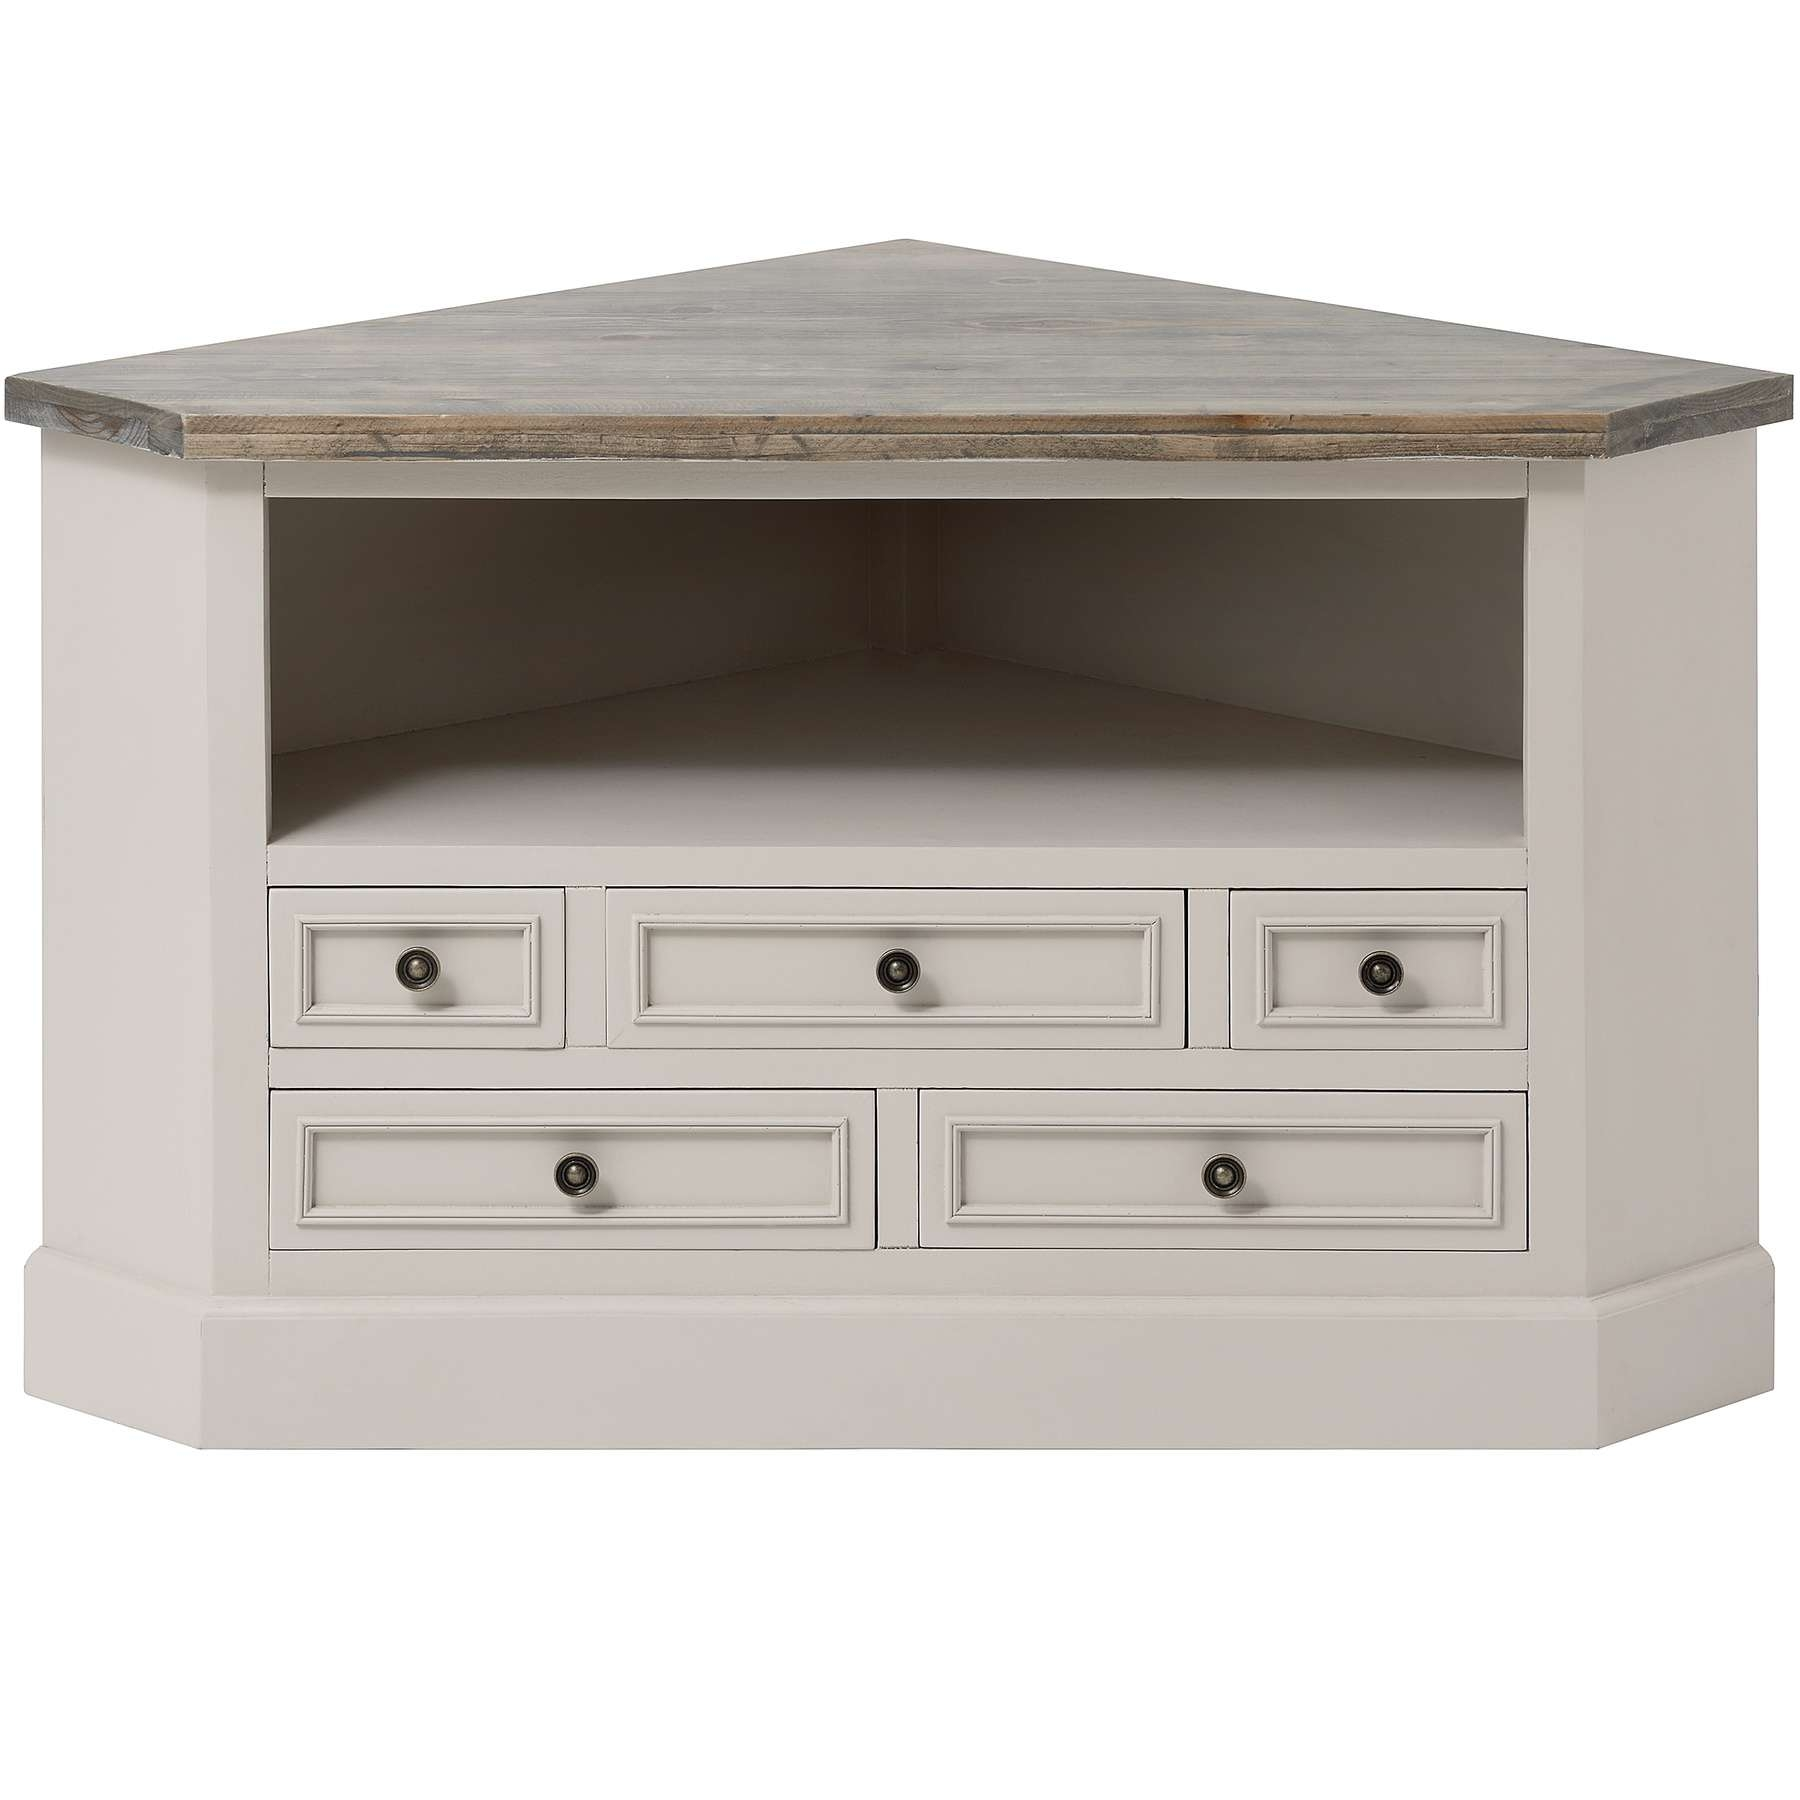 The Studley Collection Corner Tv Unit | From Baytree Interiors In White Corner Tv Cabinets (View 17 of 20)